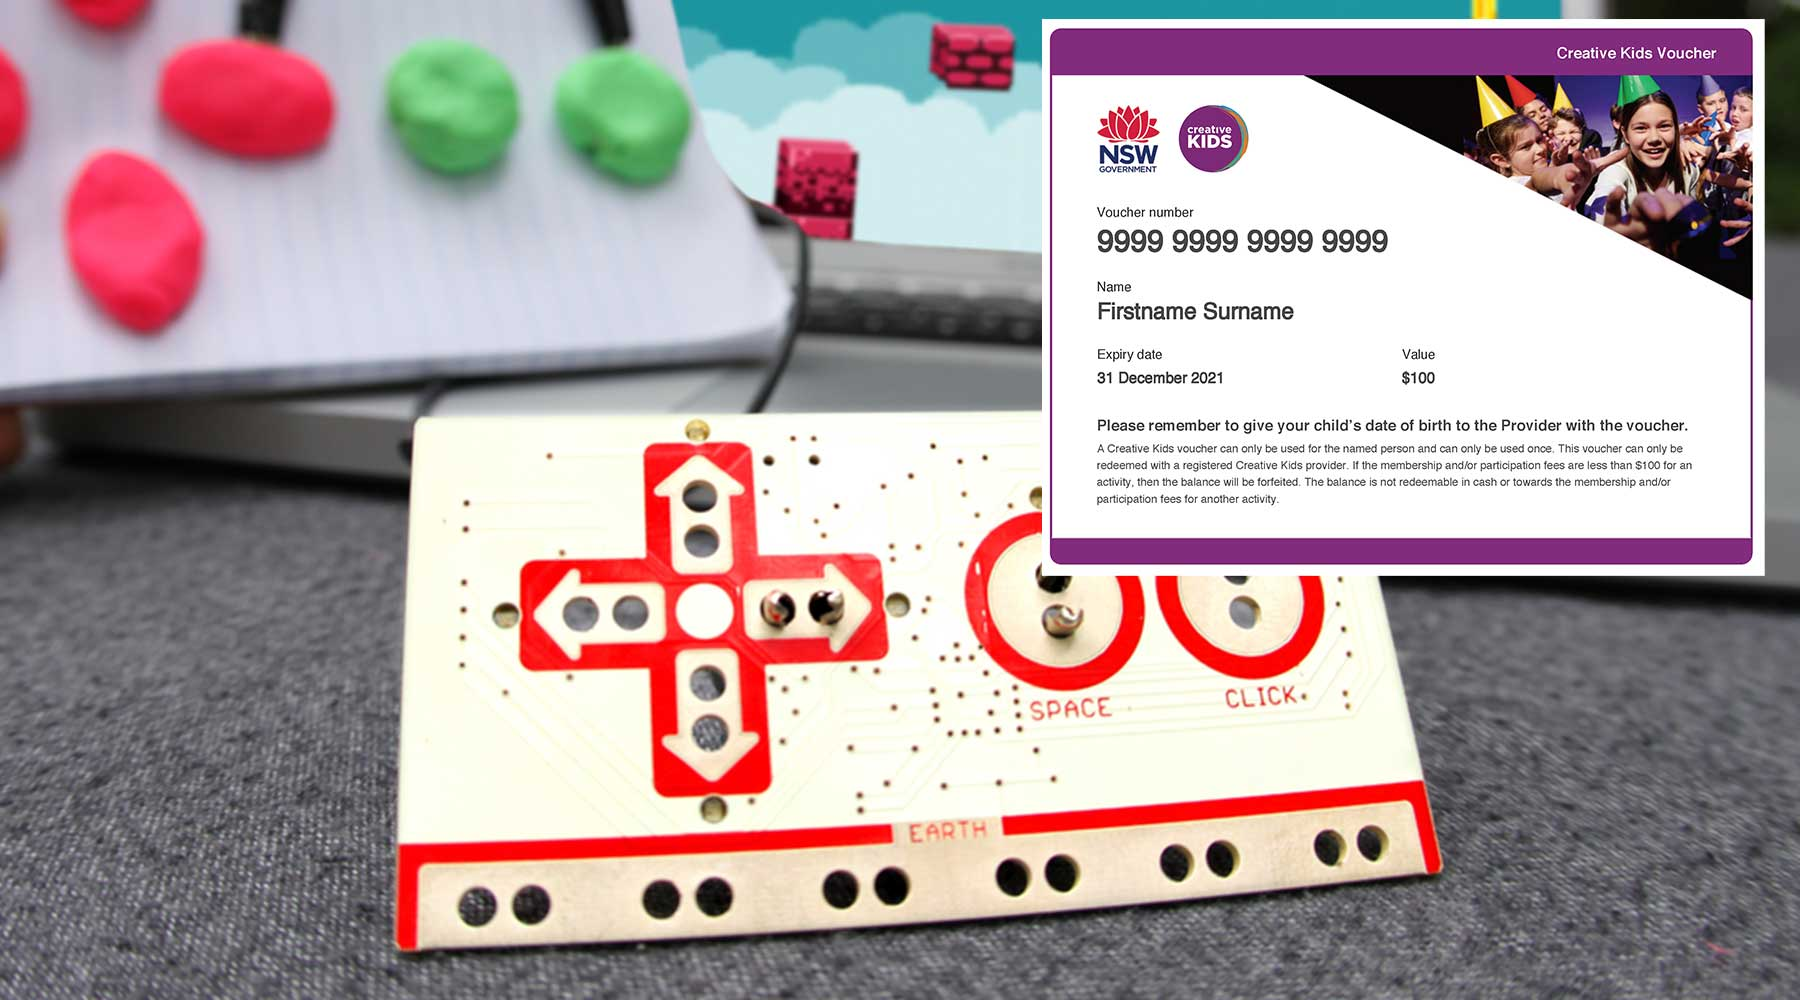 Creative Kids Online Academy - Makey Makey Level 1 with Creative Kids Voucher